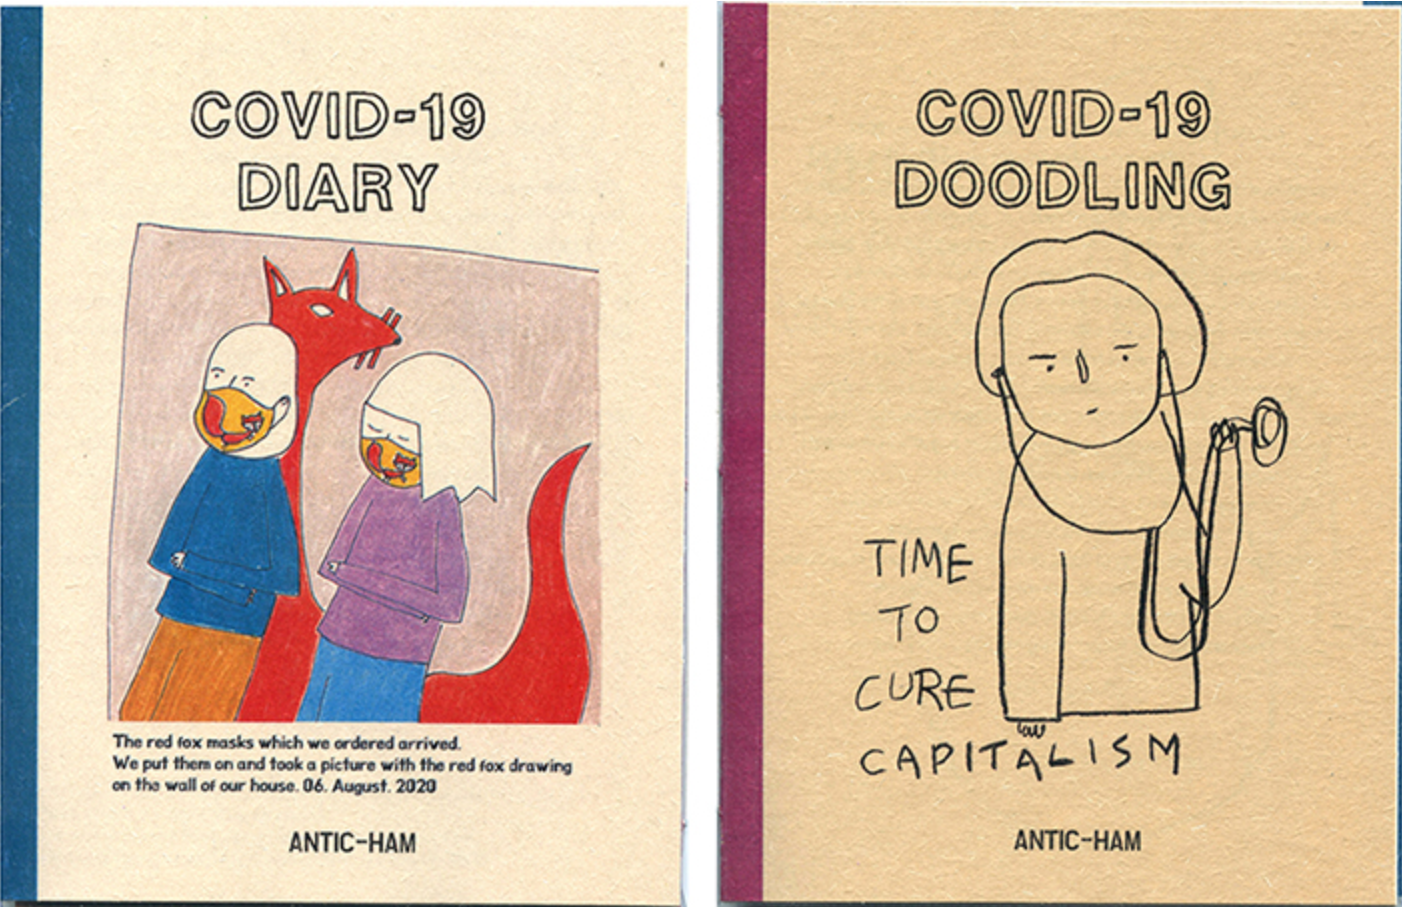 The front covers of Antic-Ham's artist's books Covid-19 Doodling and Covid-19 Diary